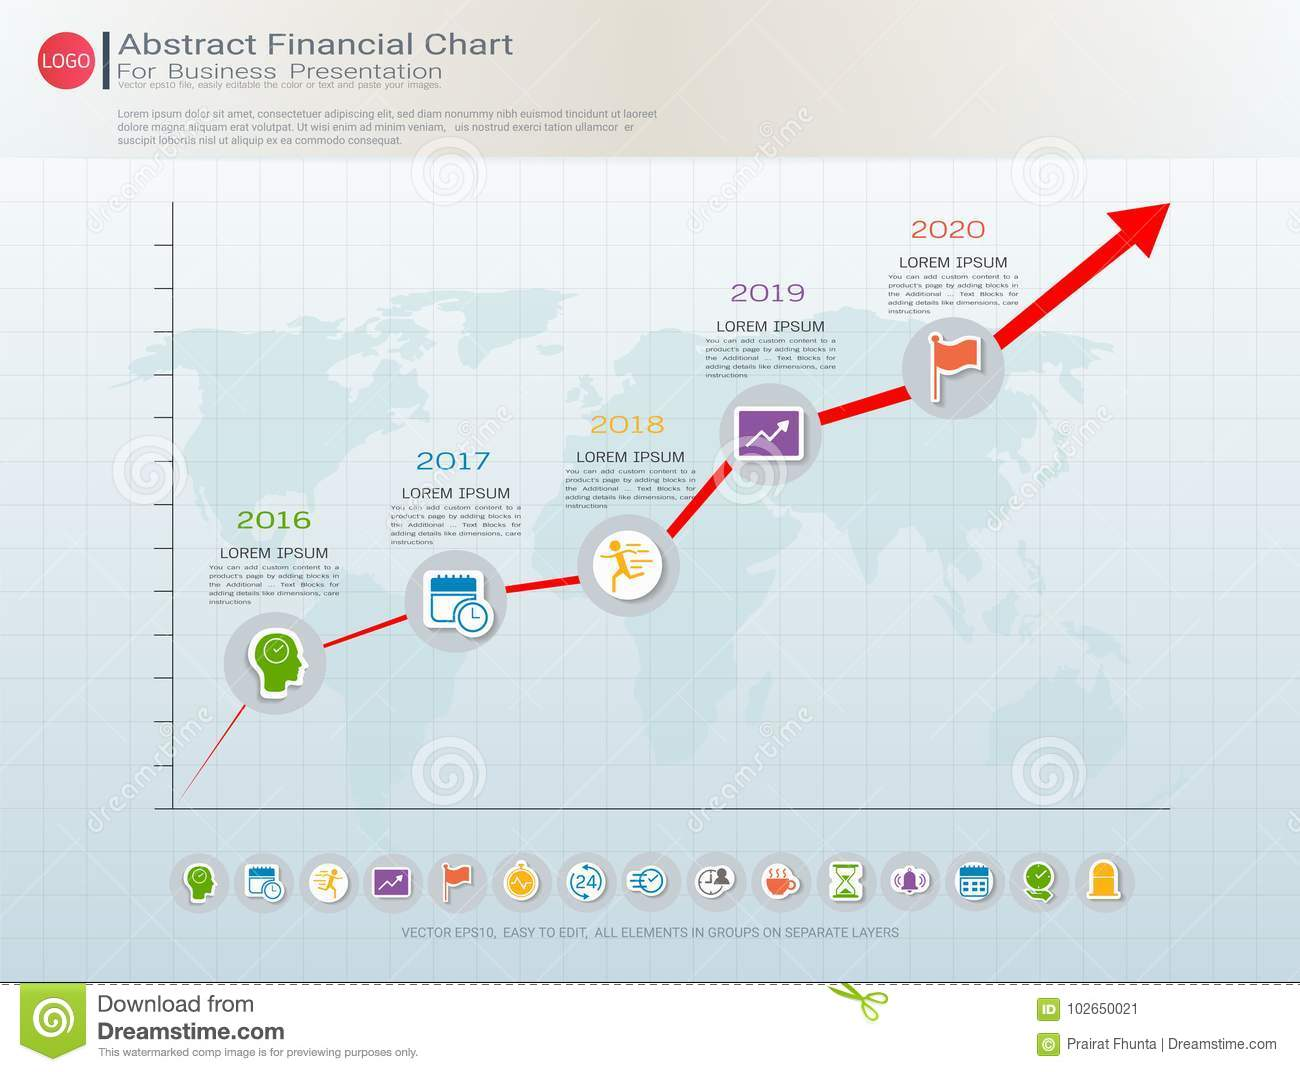 Abstract financial chart with uptrend line graph